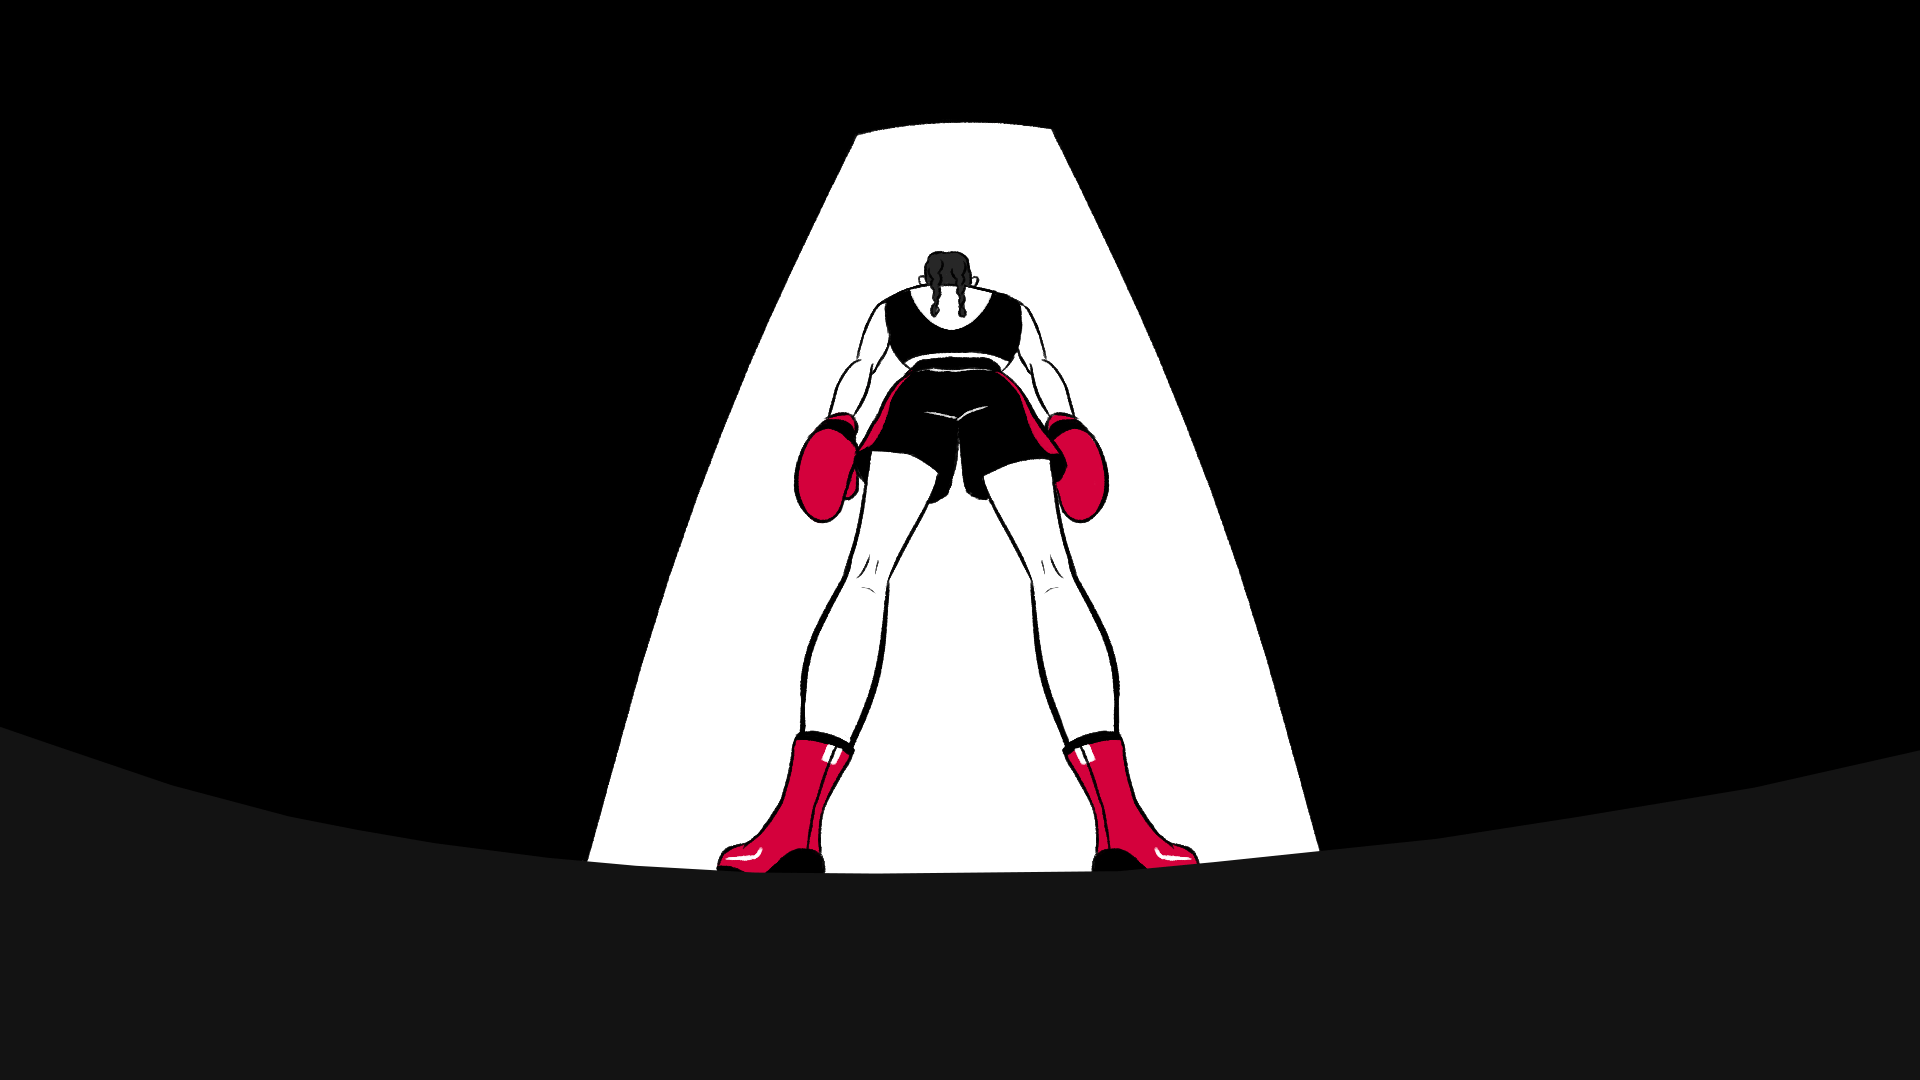 illustration showing a female boxing entering the rink